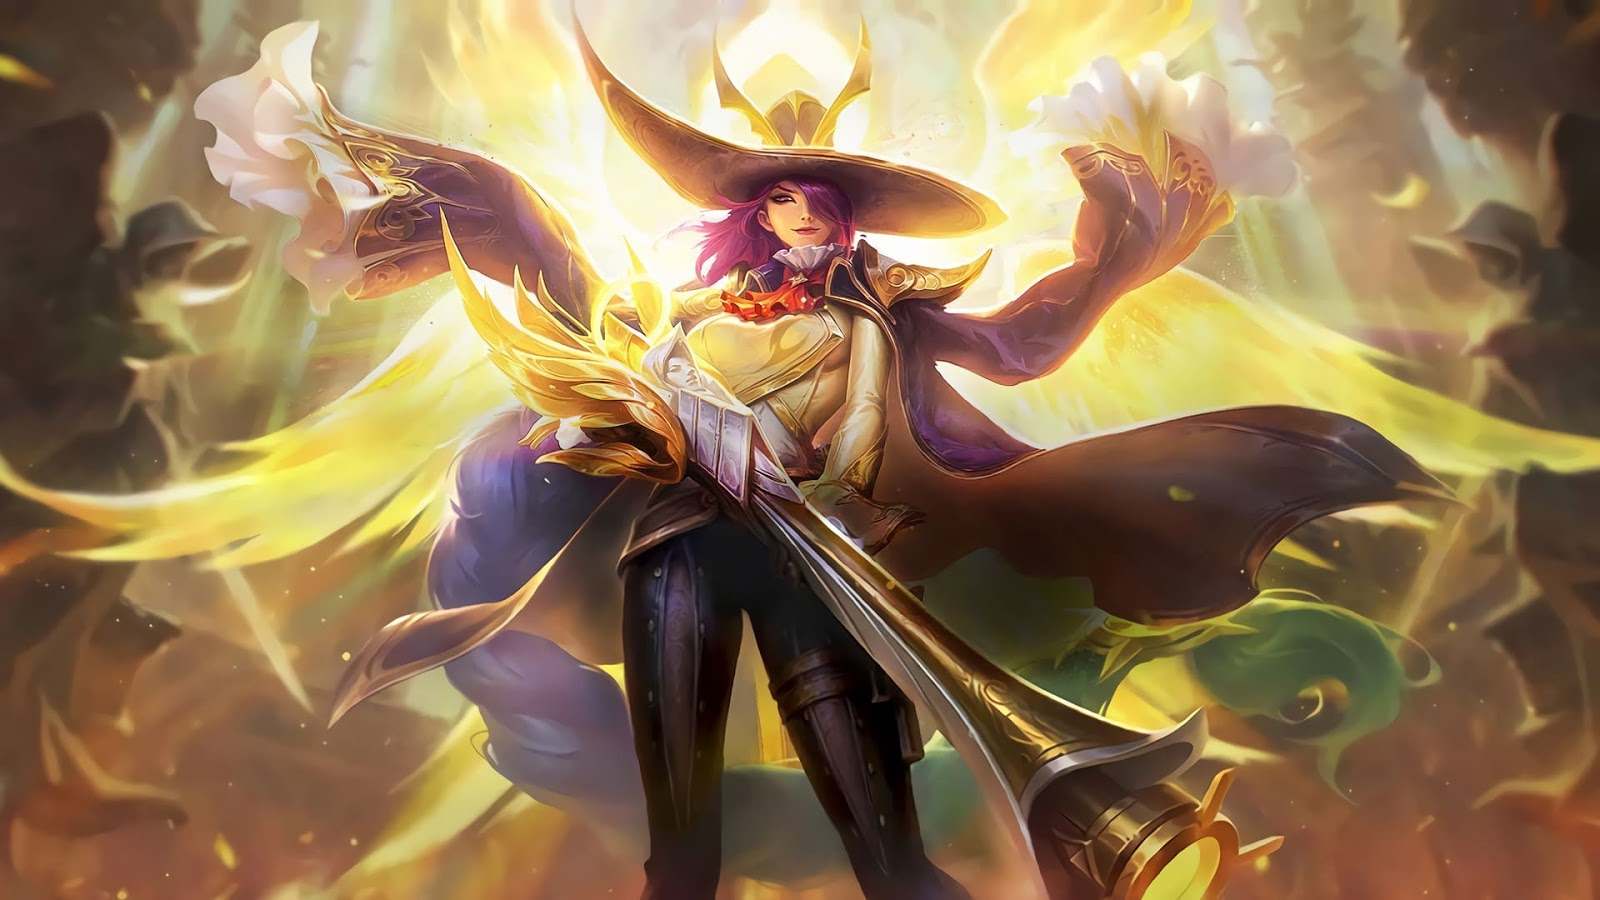 Wallpaper Lesley Angelic Agent Skin Mobile Legends HD for PC